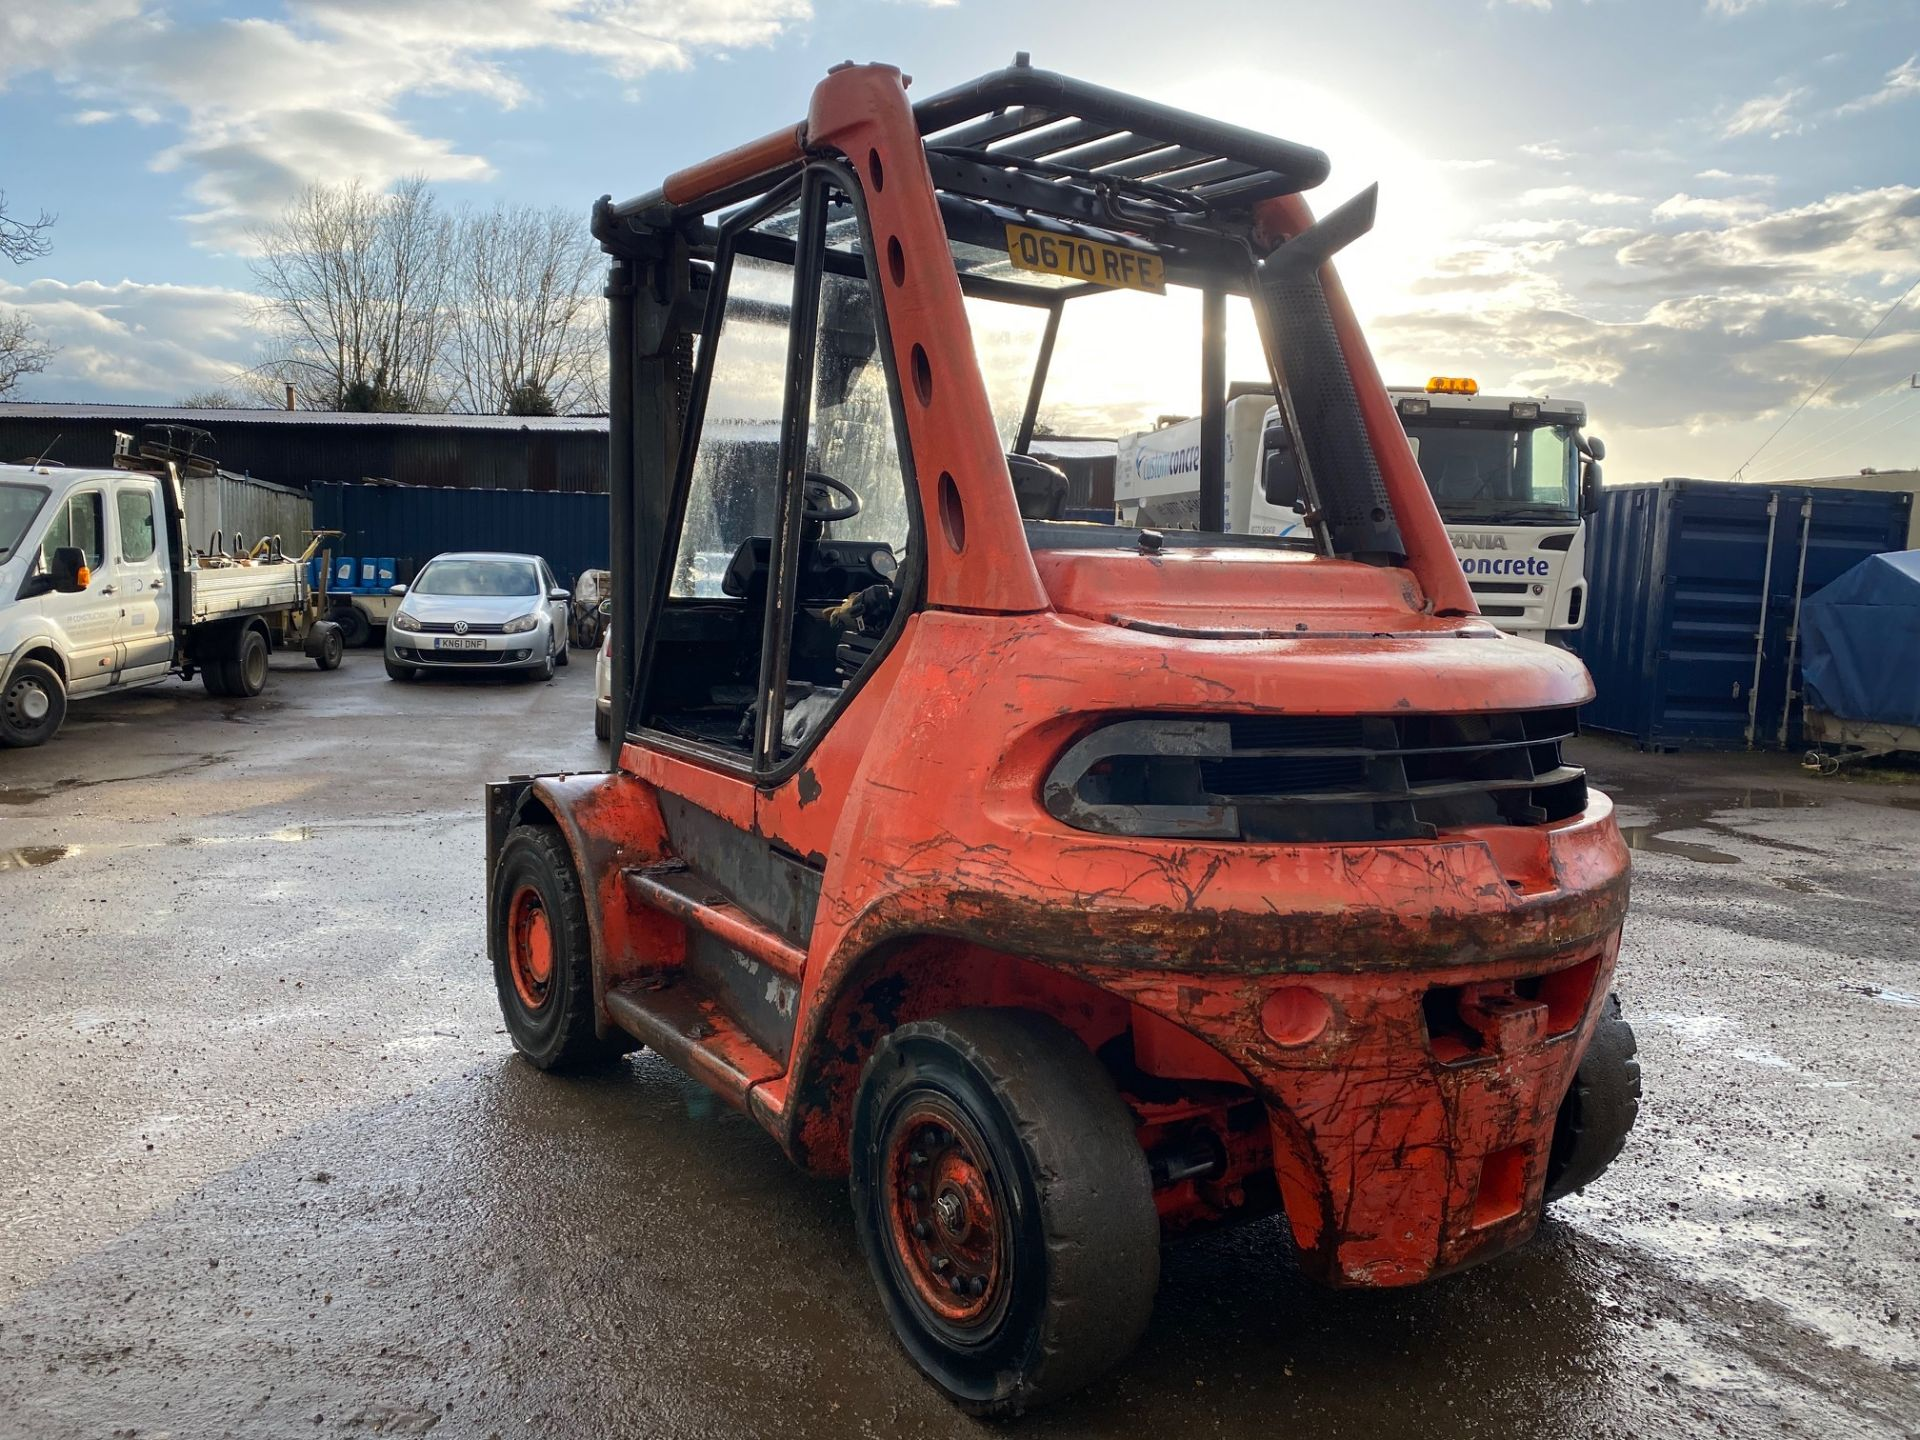 1998 Linde H60D forklift, 8200 hours, Deutz 6 cylinder engine Forks will be included with the truck - Image 2 of 5